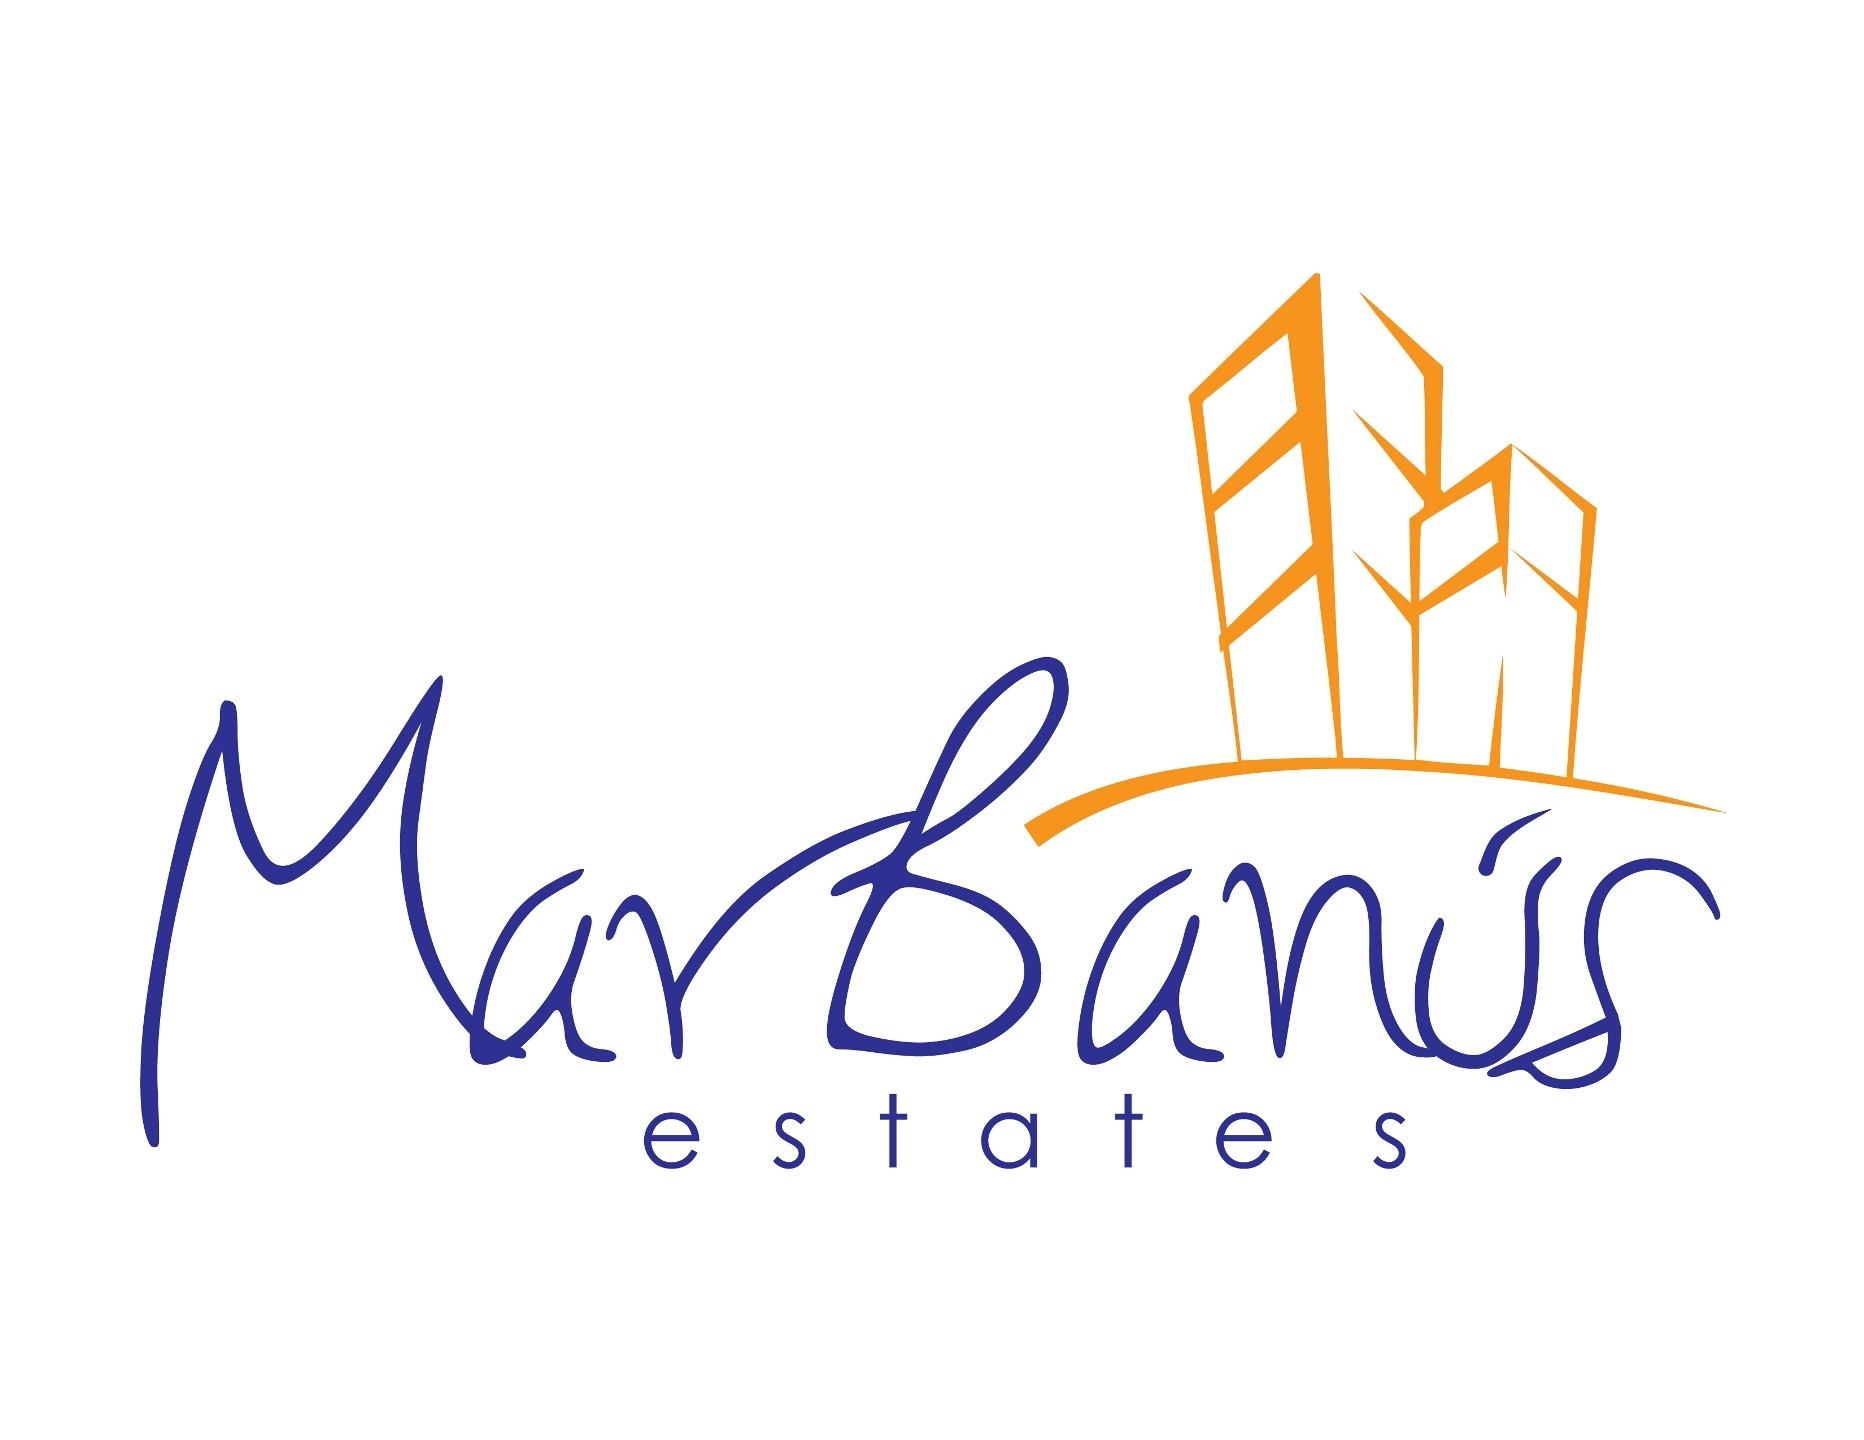 MARBANUS ESTATES logo